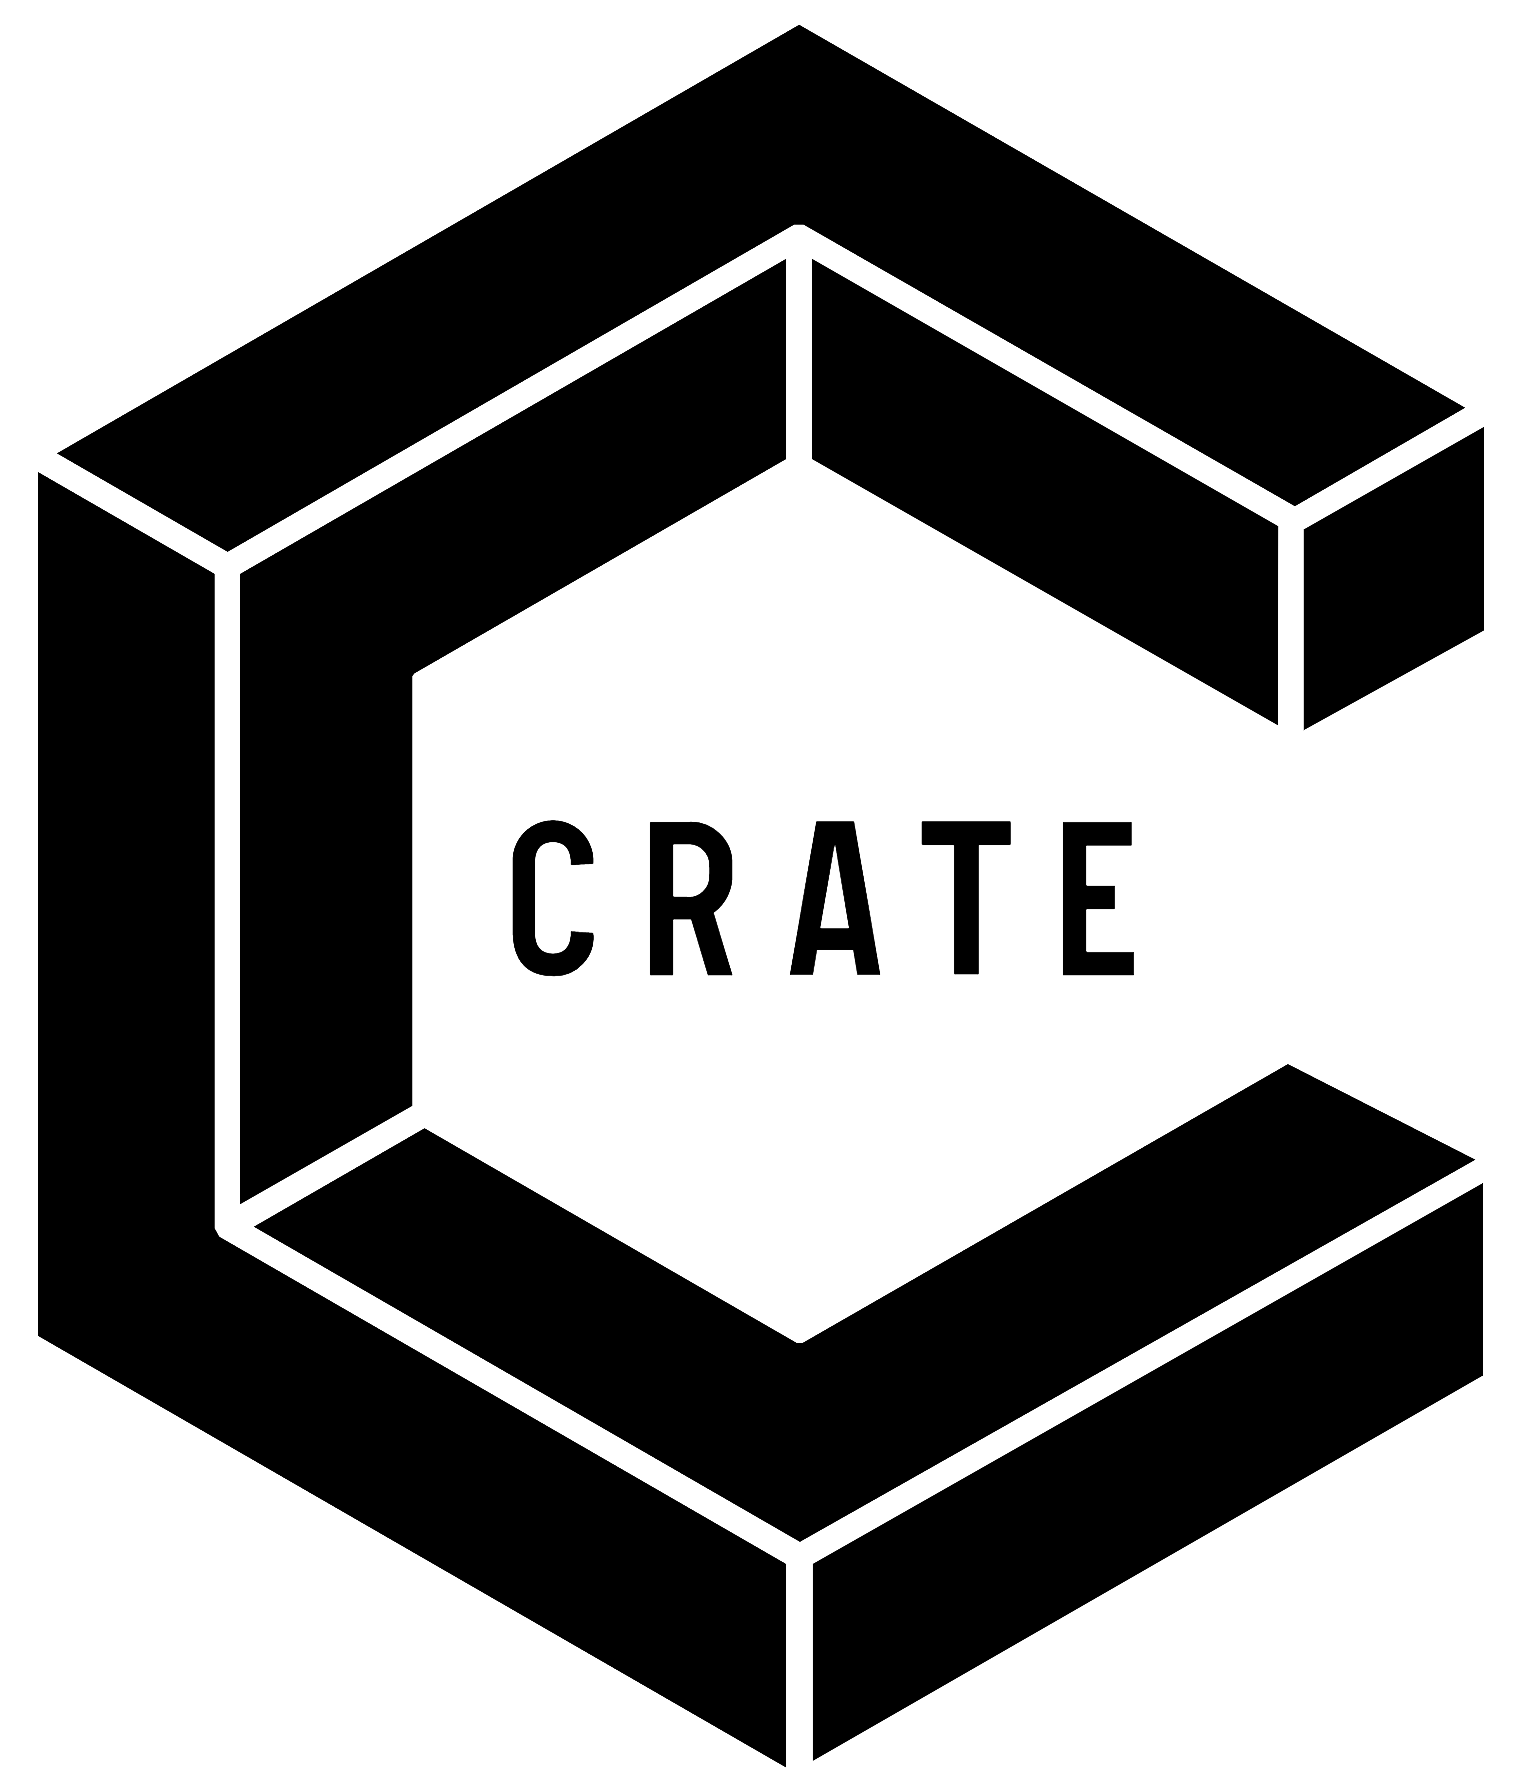 crate brewery logo london beer bangers and mash dog friendly.png